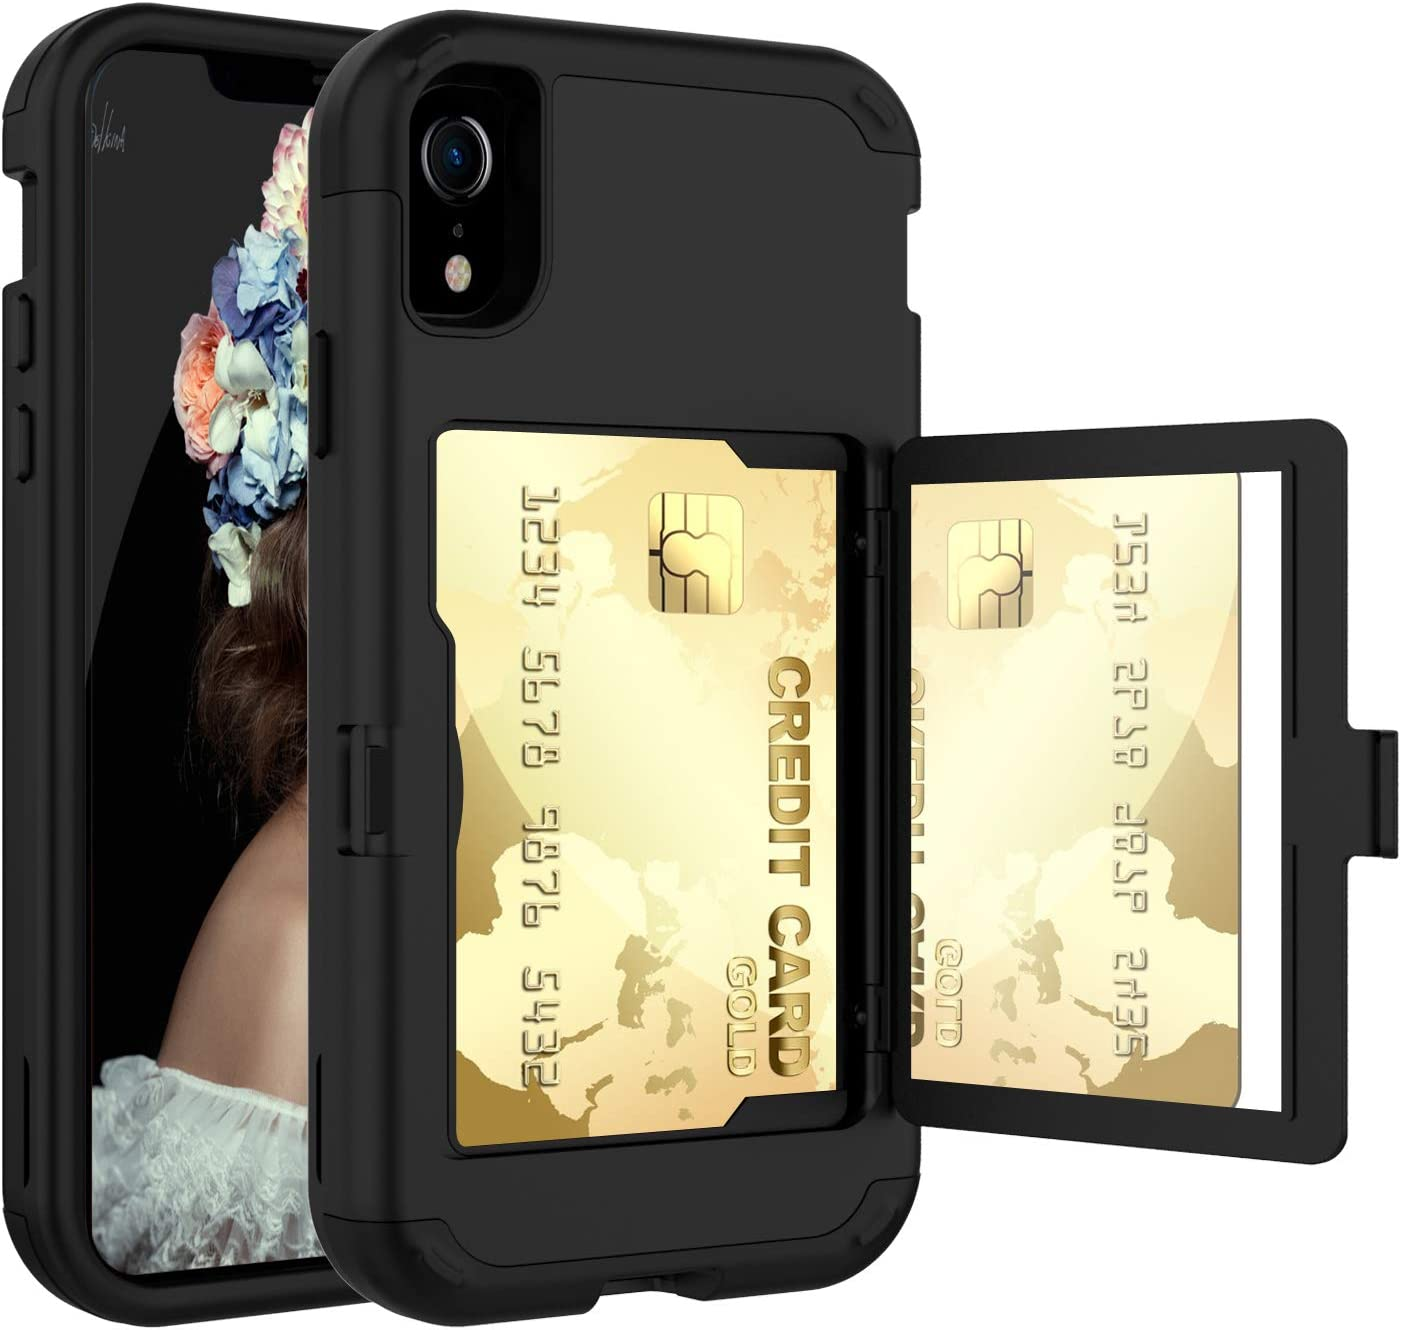 Acxlife iPhone XR Case,XR Wallet Credit Card Holder Case,Shockproof Heavy-Duty Protective Hybrid Cover with Card Slot Holder and Mirror&Kickstand Case for (Black, iPhone xr 6.1 Inch)